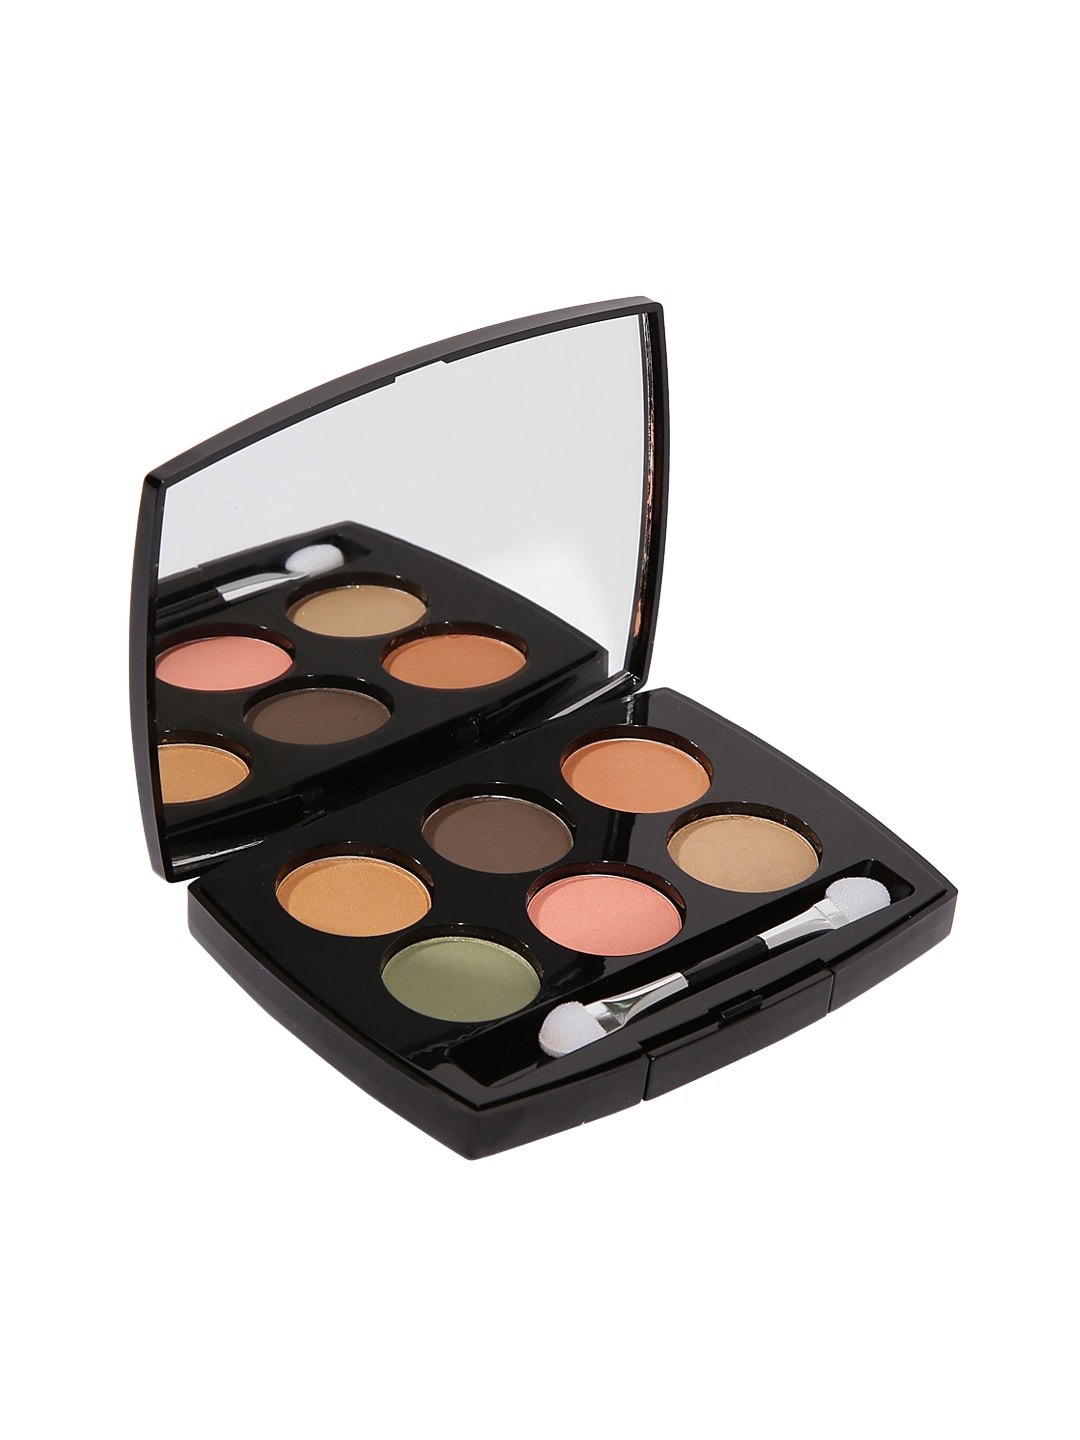 Lakme Absolute Gold Illuminating Eyeshadow Palette image